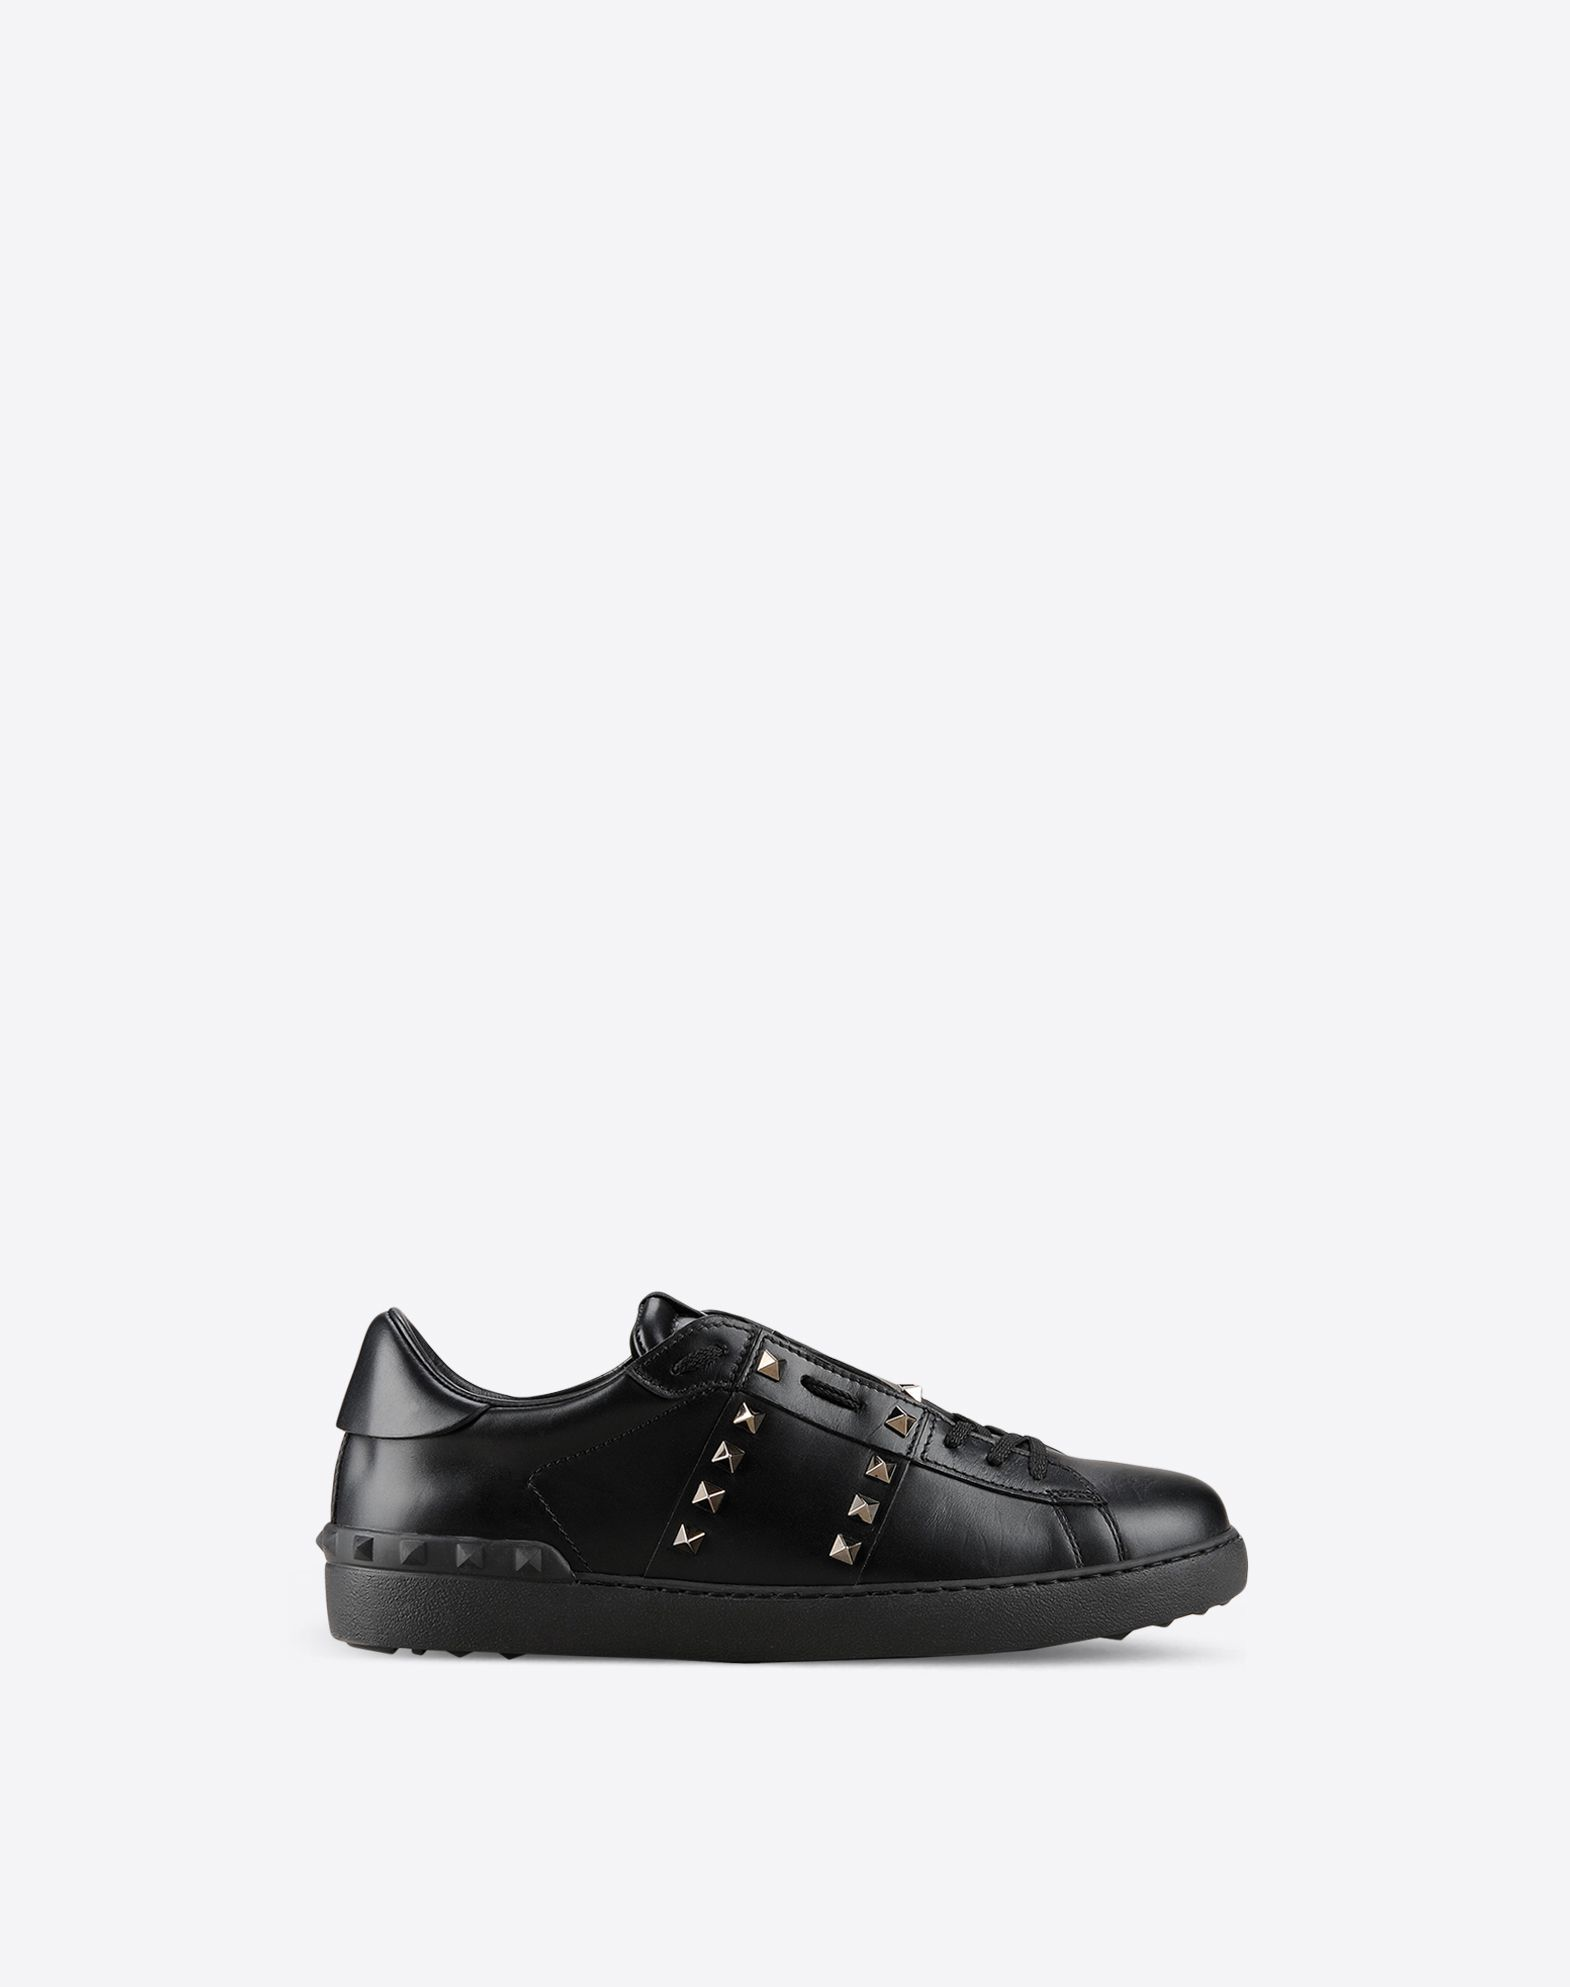 VALENTINO Solid color Laces Studs  11017249th